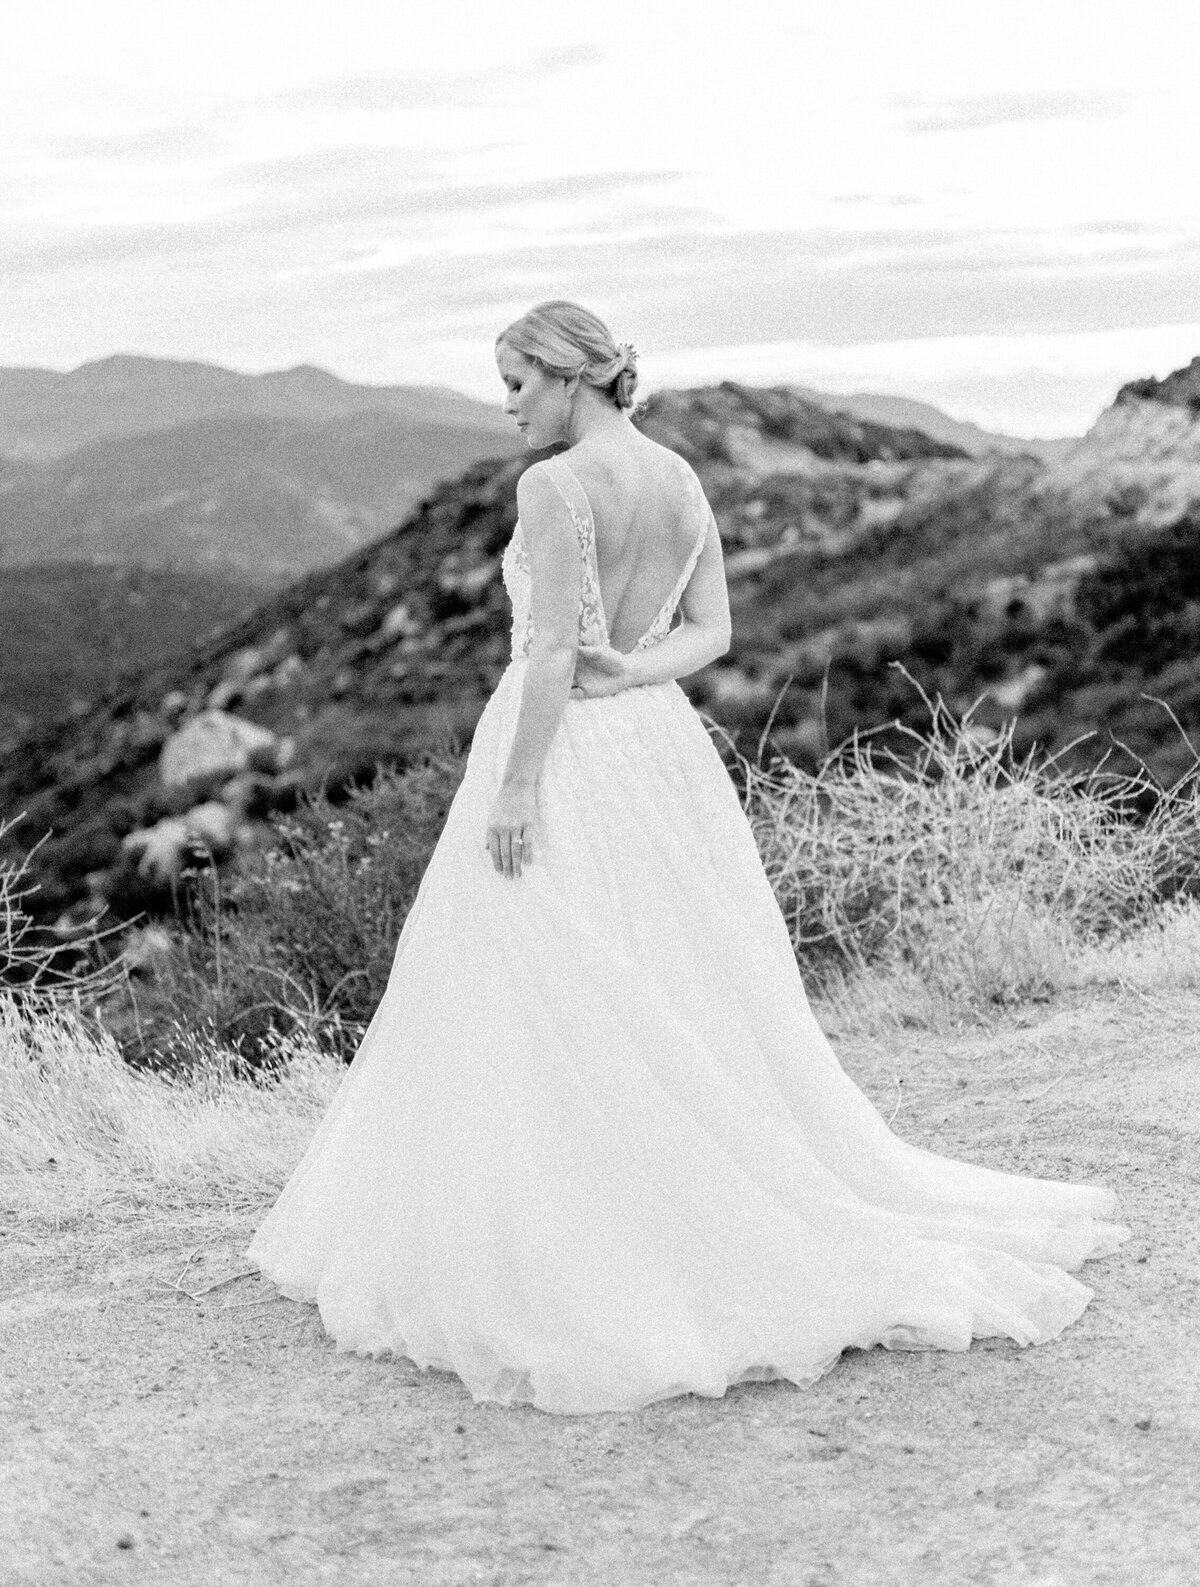 san-francisco-elopement-mountains-jessi-clare36